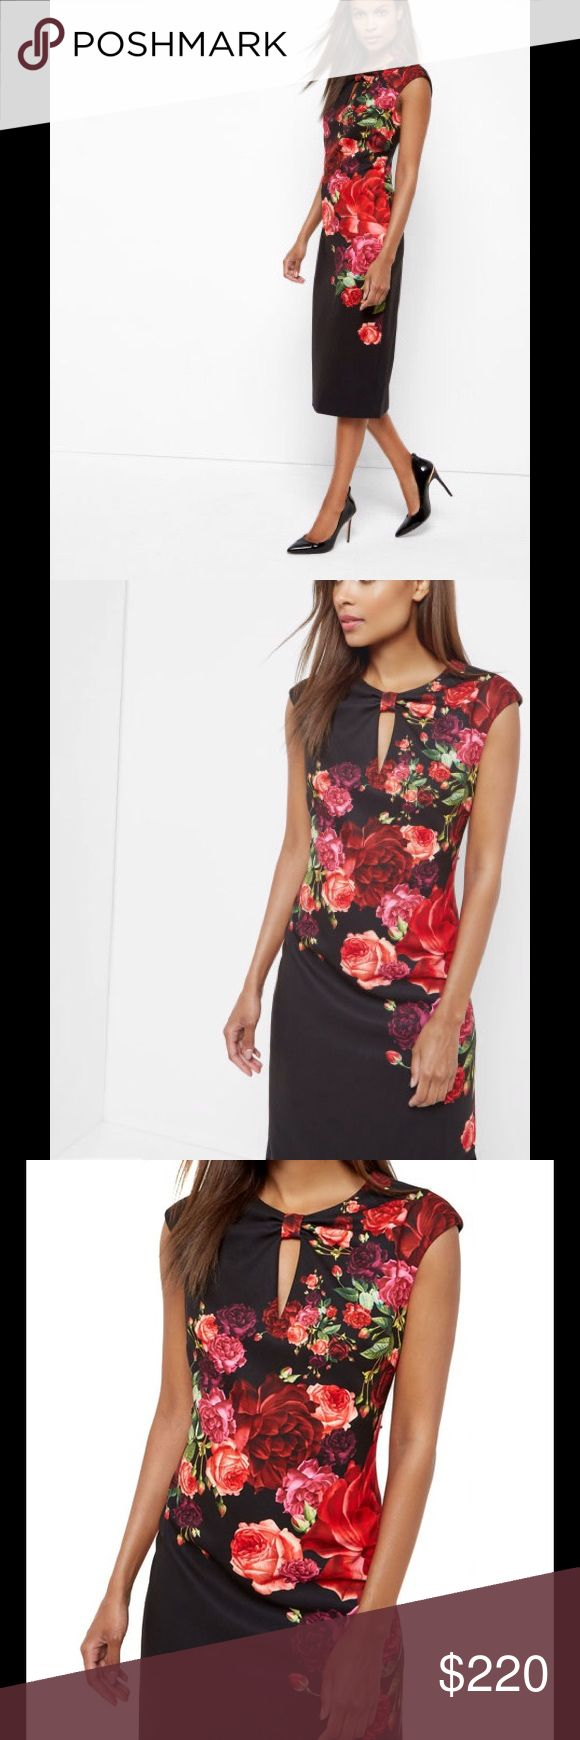 Selling this Ted Baker Womens Mirrie Juxtapose Rose Knot Dress on Poshmark! My username is: ornelashtembari. #shopmycloset #poshmark #fashion #shopping #style #forsale #Ted Baker #Dresses & Skirts